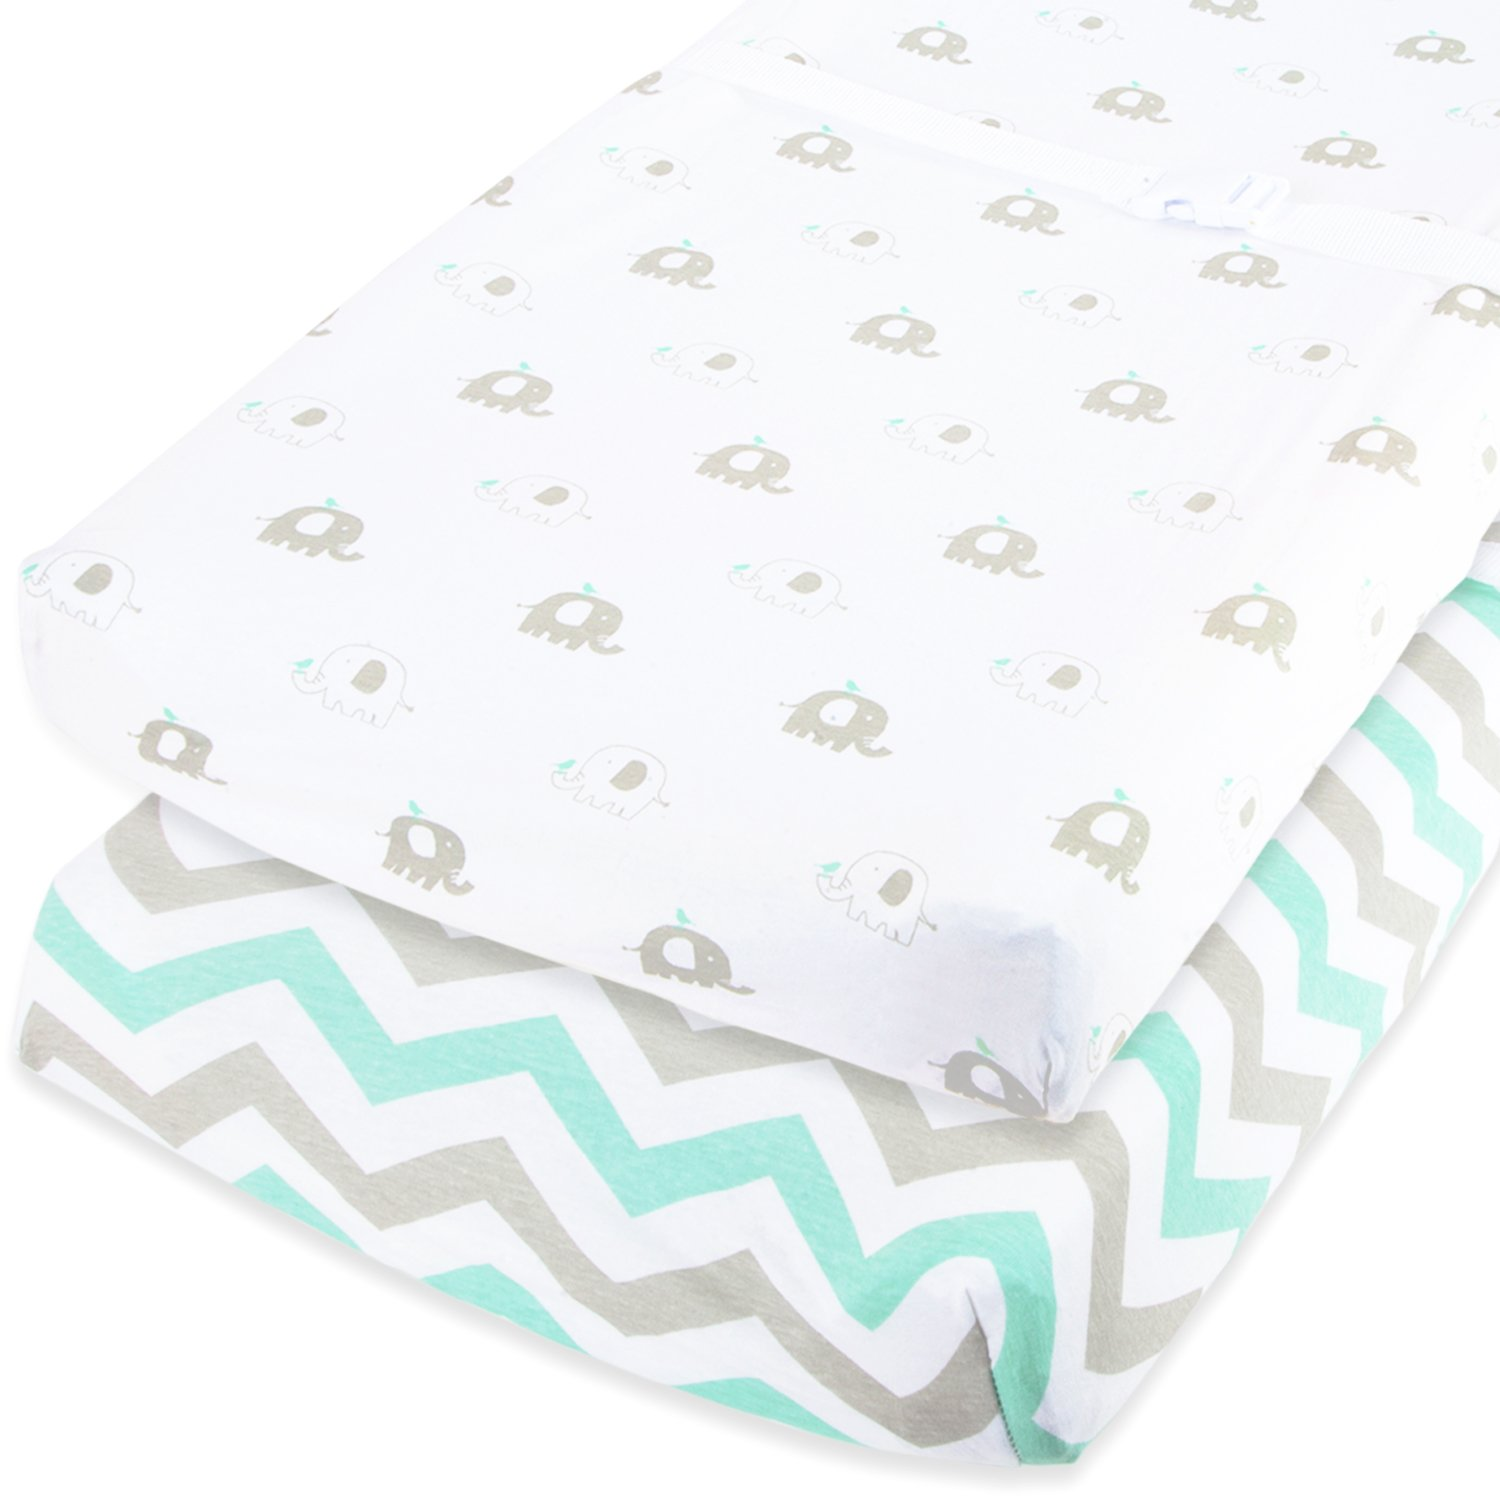 CUDDLY CUBS Set of 2 Jersey Cotton Fitted Crib Sheets in Gray and Mint with Chevron & Elephants - TOP QUALITY Nursery Bedding for Boy or Girl, Ideal Baby Shower Gift CCJCCS01